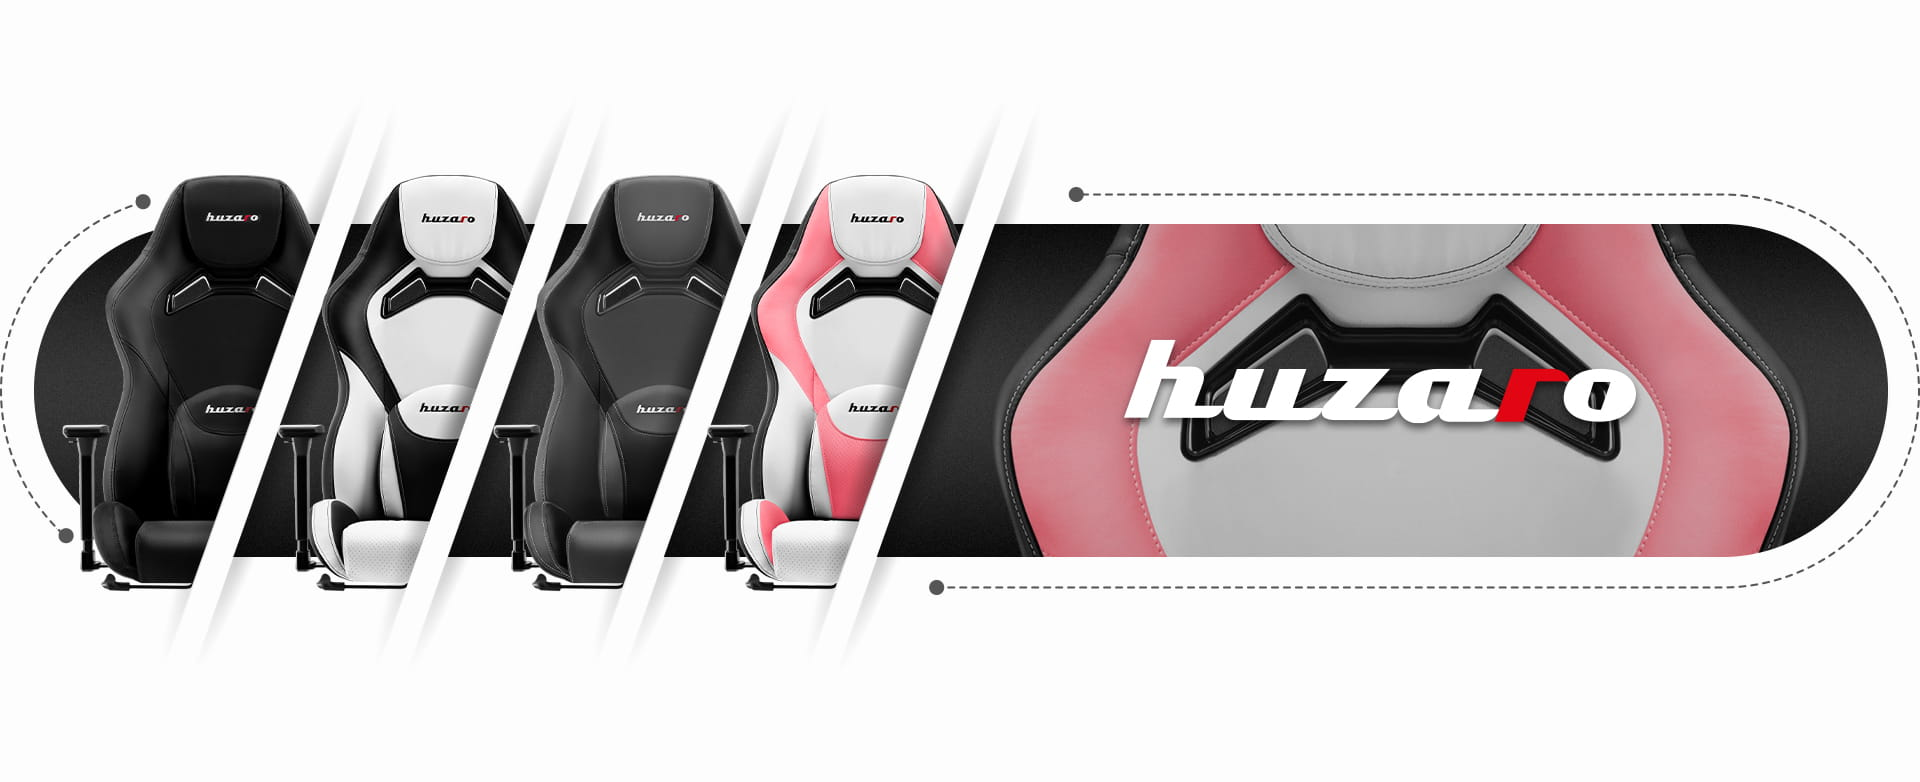 Gaming chair Force 7.3 Pink